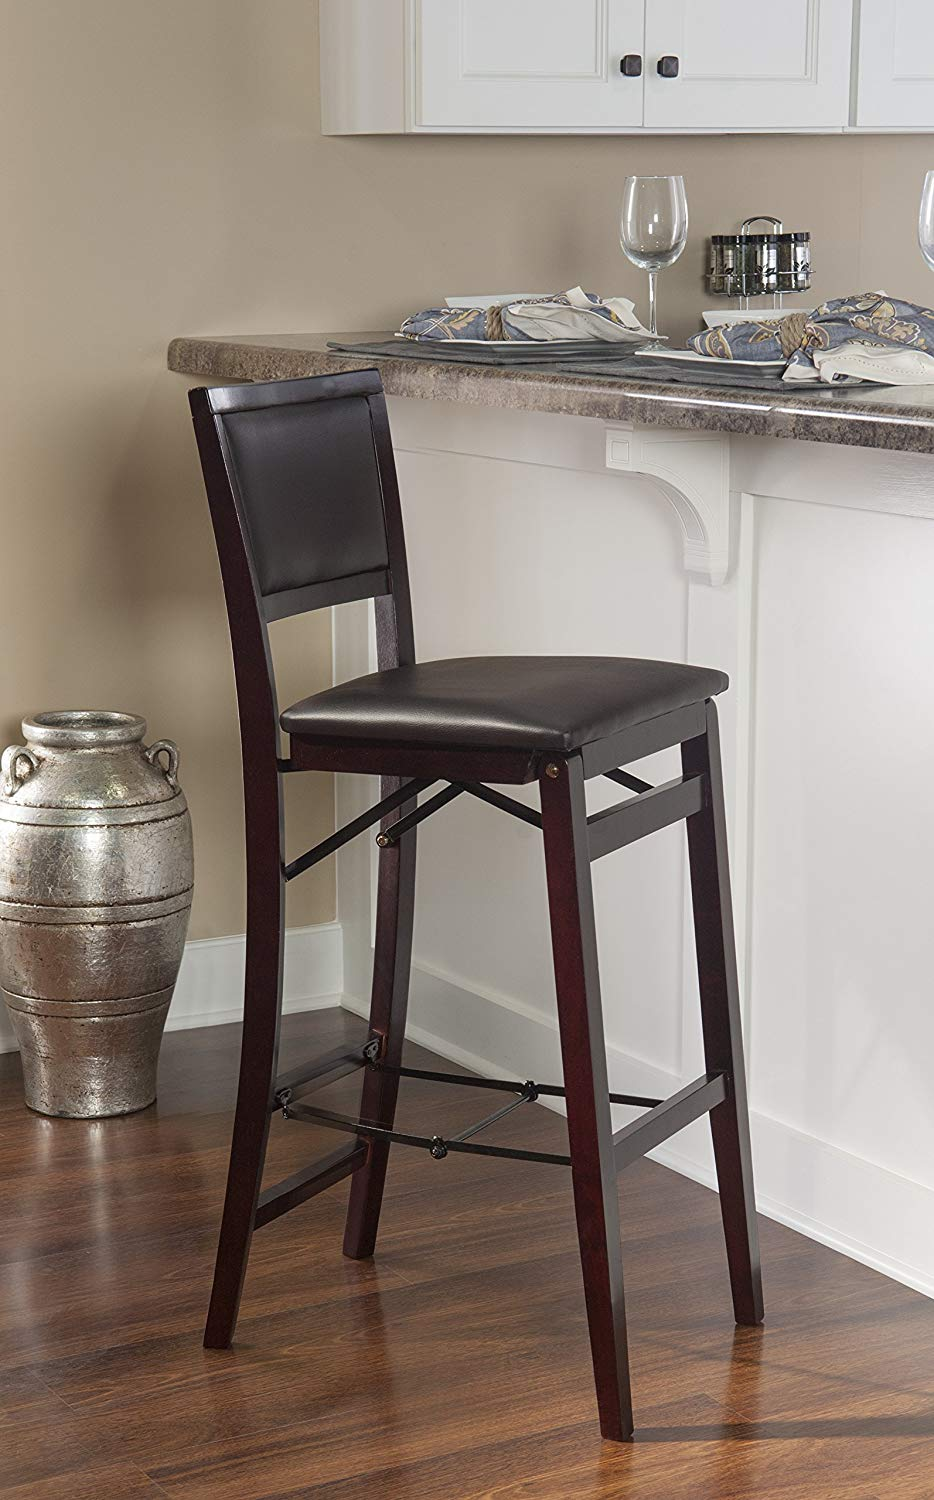 Kitchen-Bar-Chairs-Leather-Cheap-Dark-Brown-Espresso-Color